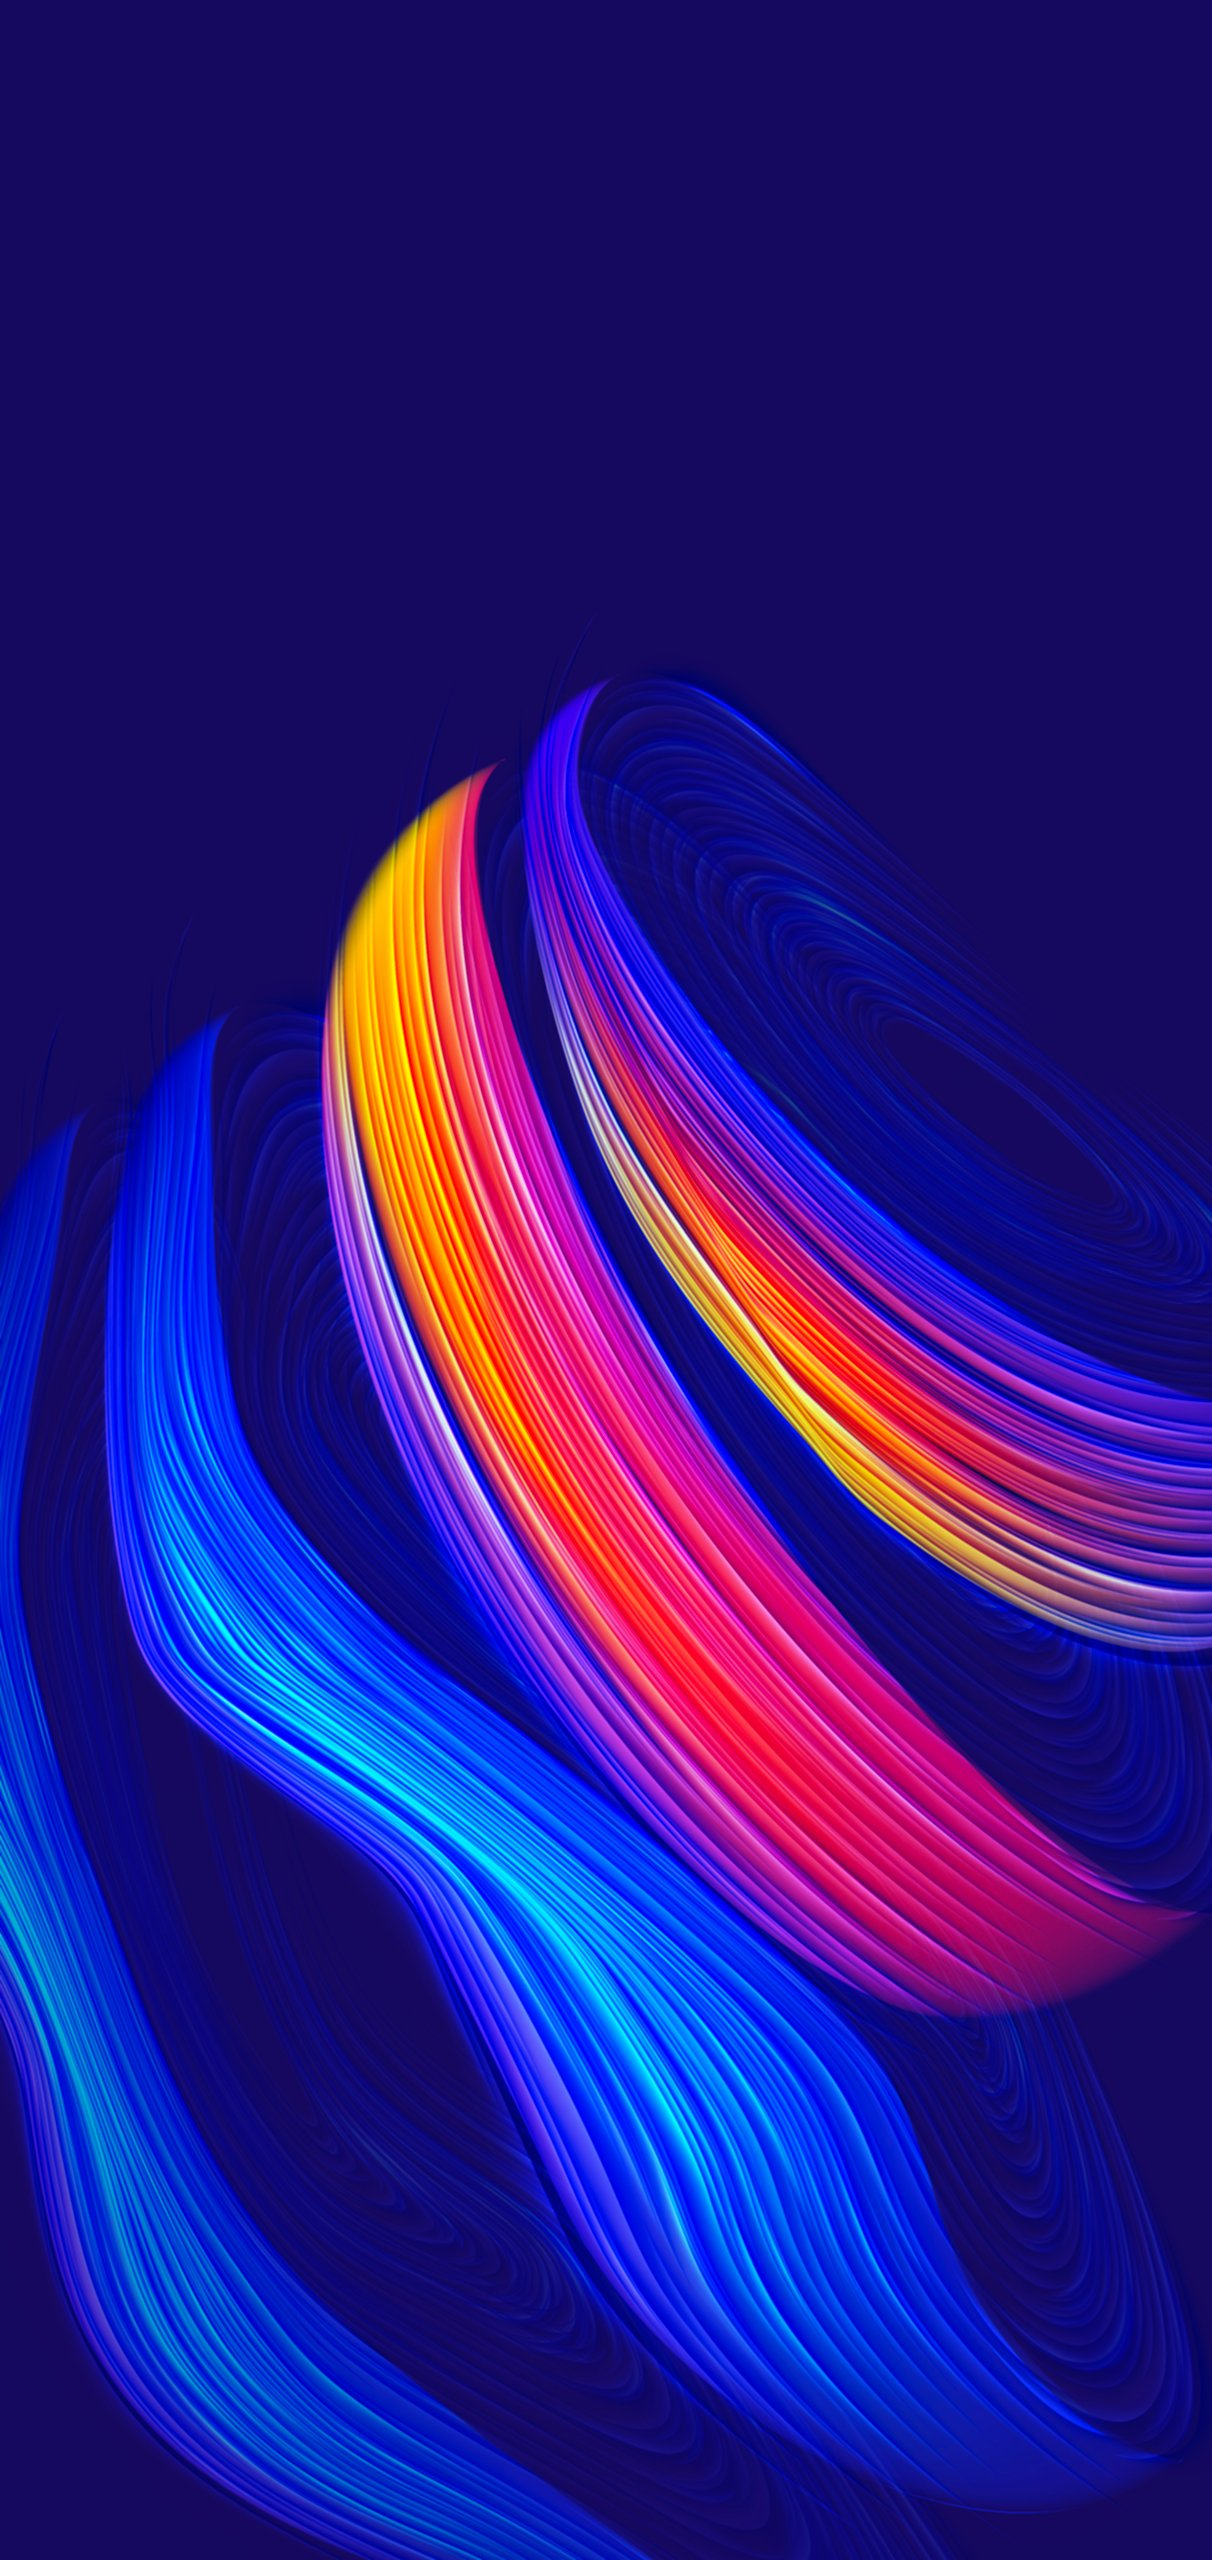 Abstract Curves iPhone wallpaper idownloadblog ieditwalls 2